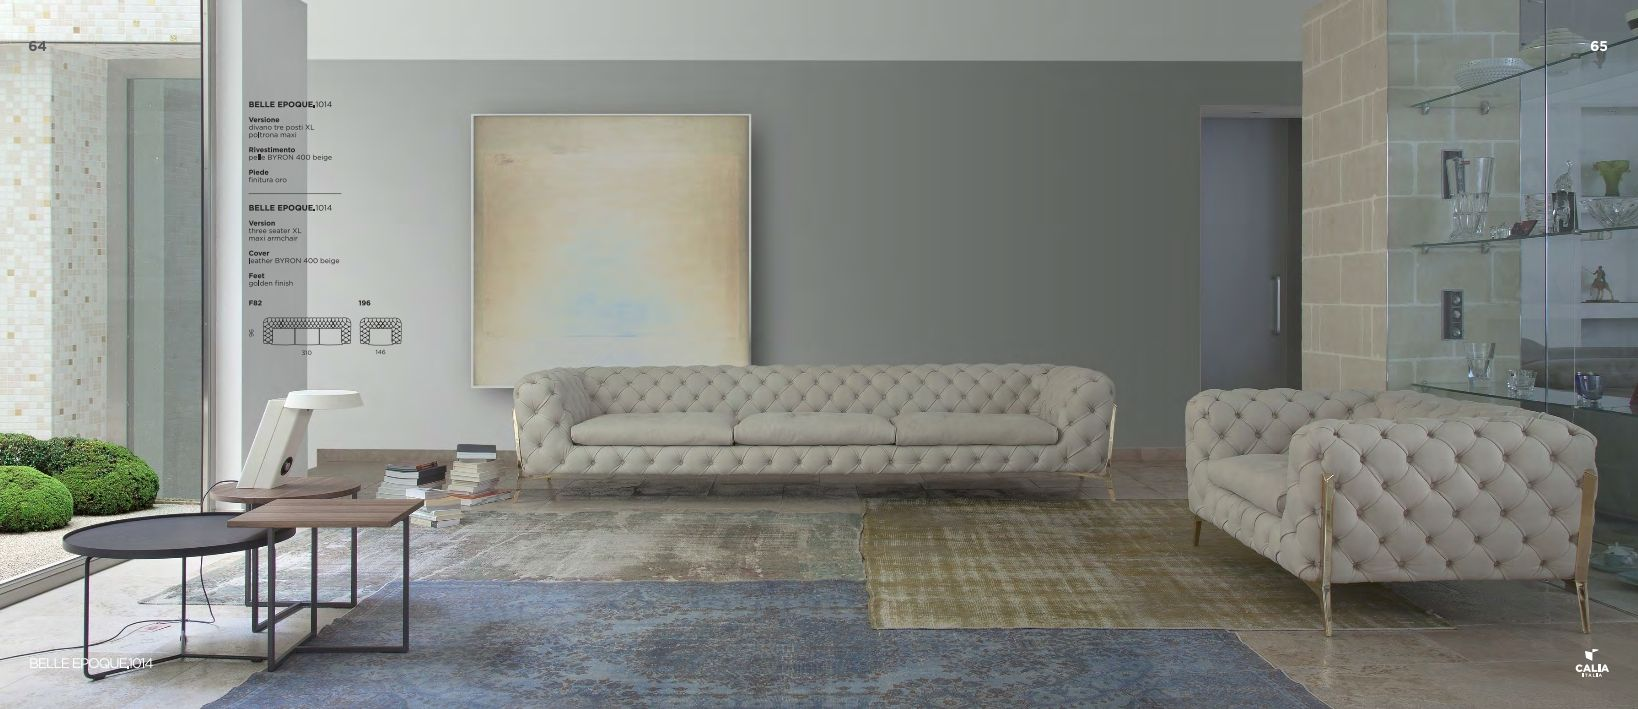 Italian Sofas Upholstered Furniture Calia Italia Belle Epoque 1014 Seriesfurniture From Italy